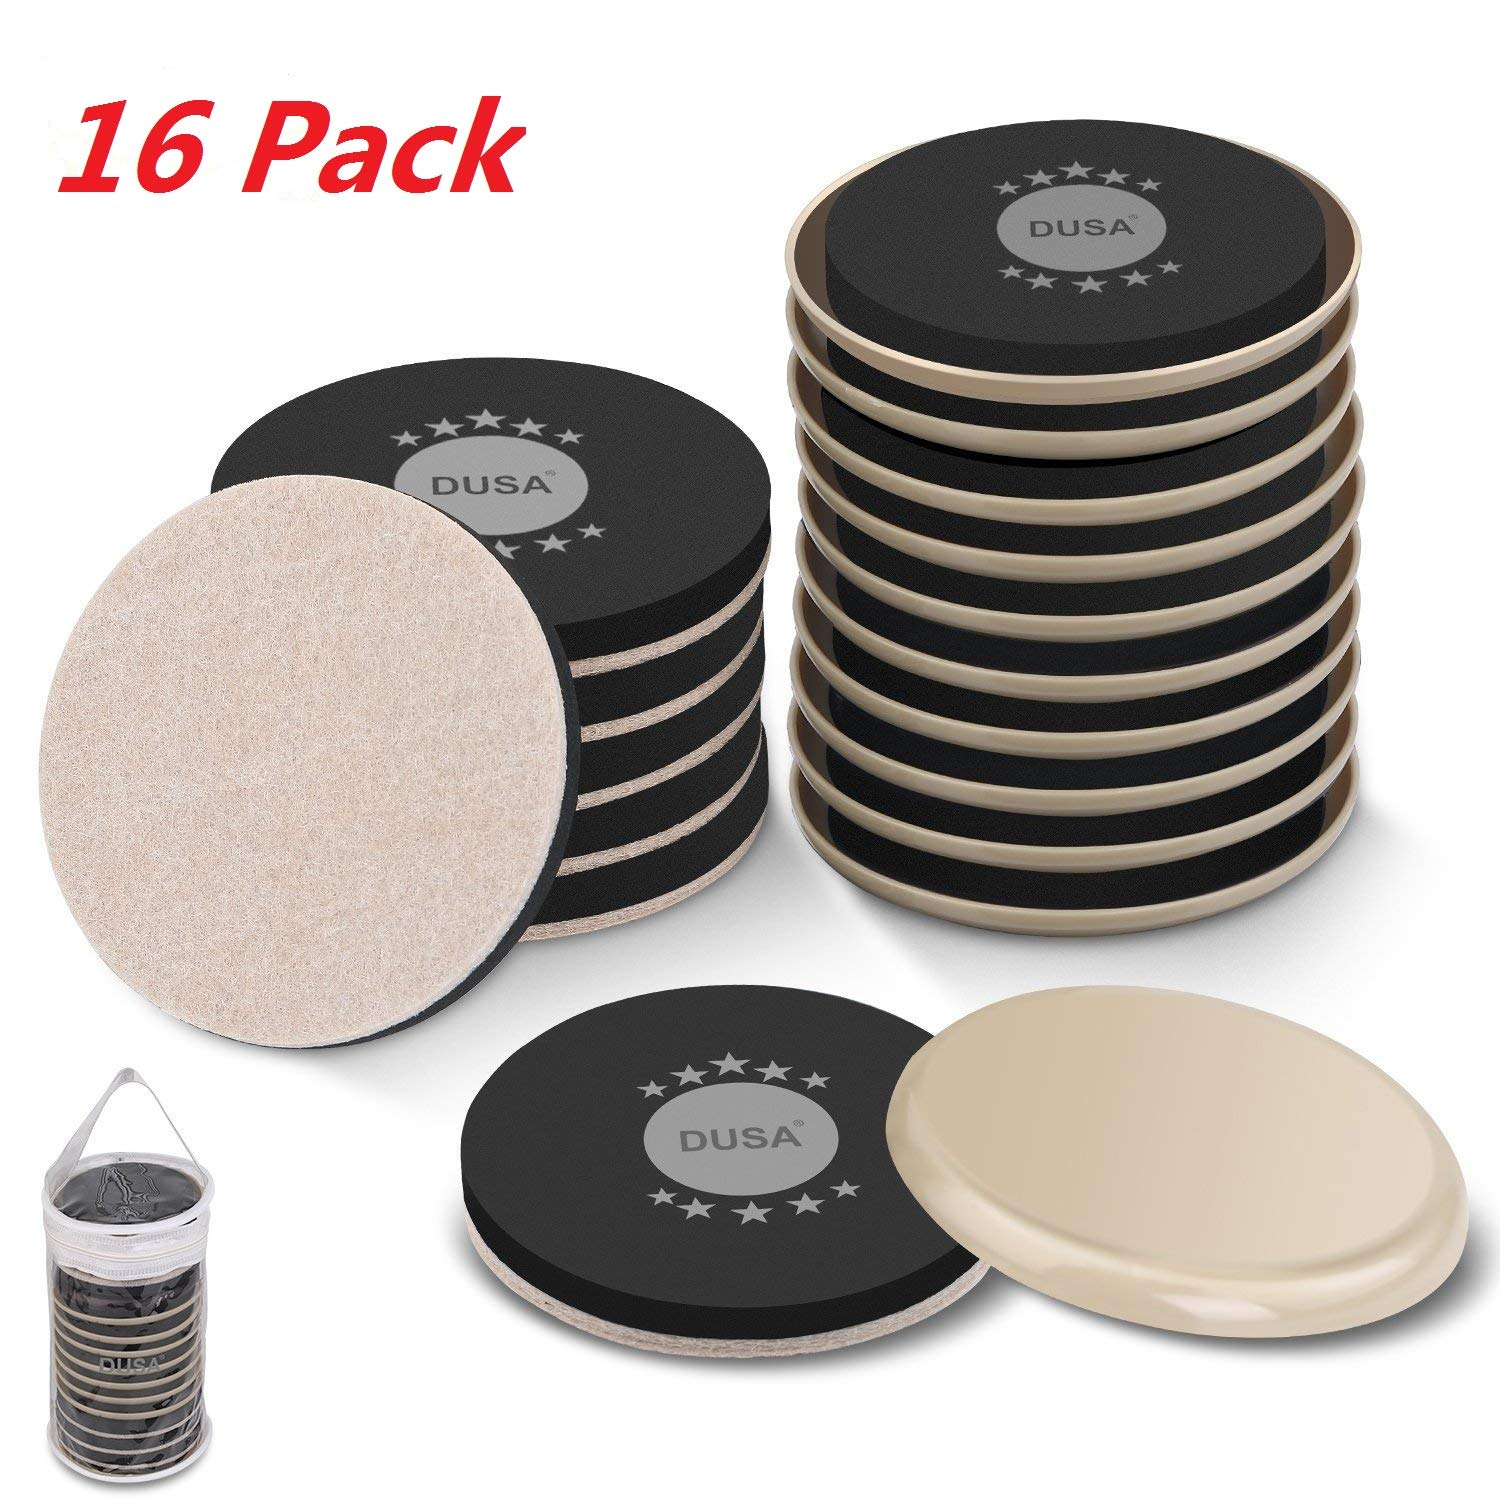 Furniture Sliders Kit (16 Piece) for Carpeted and Hard Floor Surfaces, Moving Pads, Move Heavy Furniture Quickly and Easily with Furniture Sliders - Do It Easily & Safely (Beige)